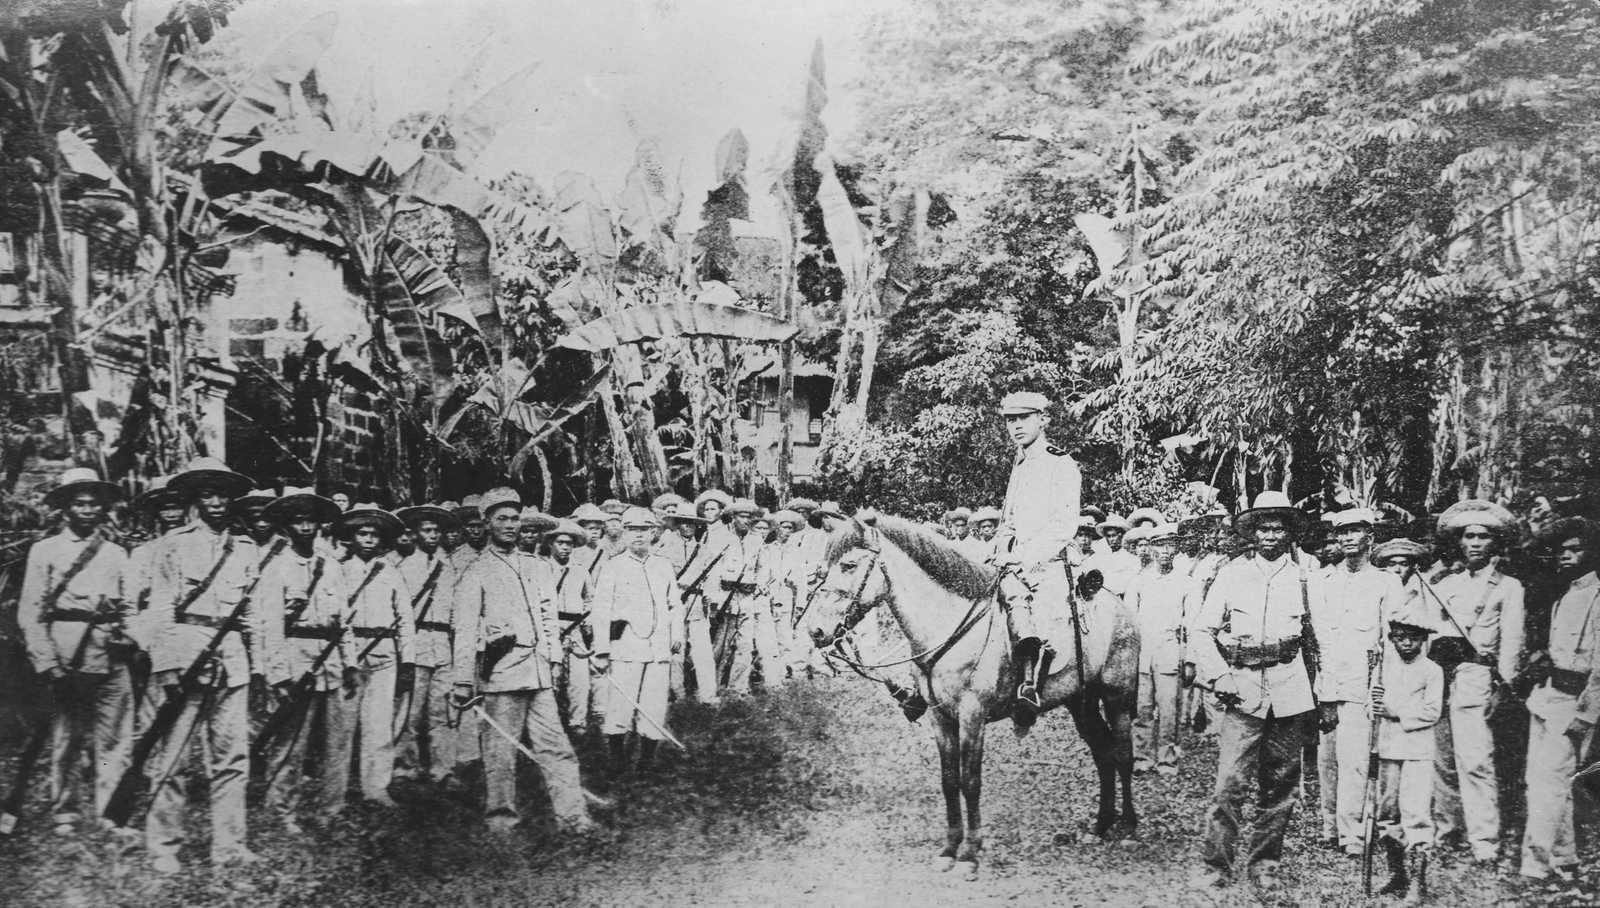 Black and white photo of Filipino soldiers in uniform and holding rifles in the jungle, with one man seated on a horse.